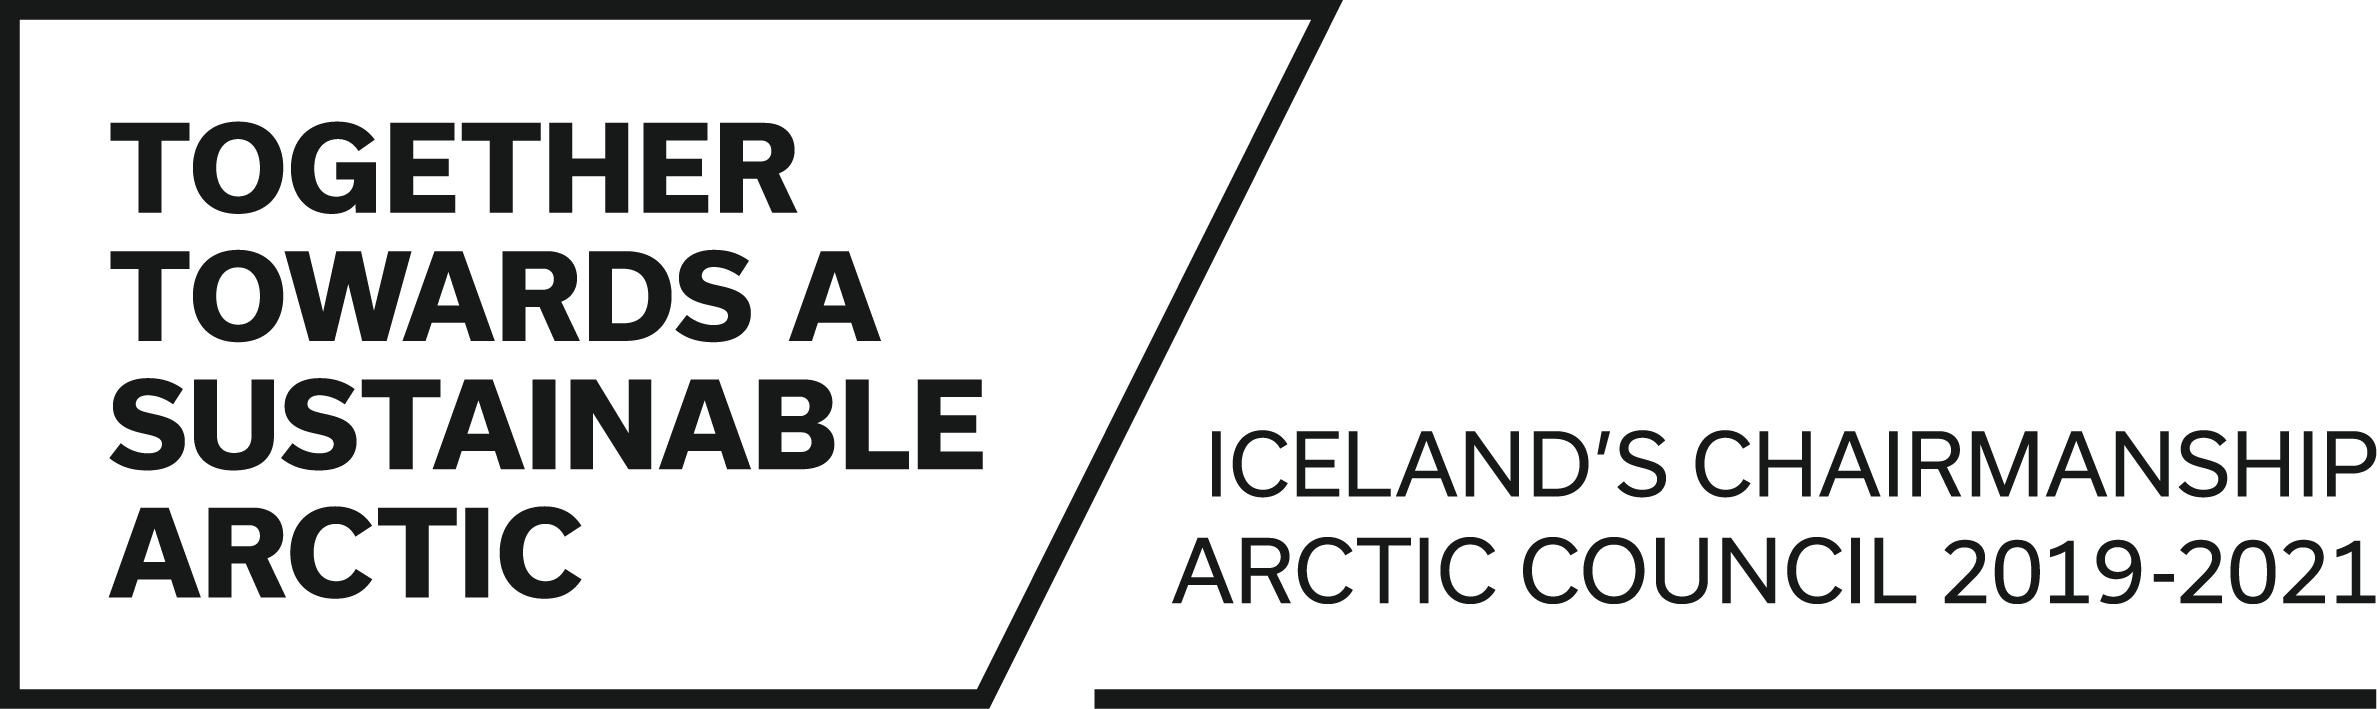 Together Towards a Sustainable Arctic logo